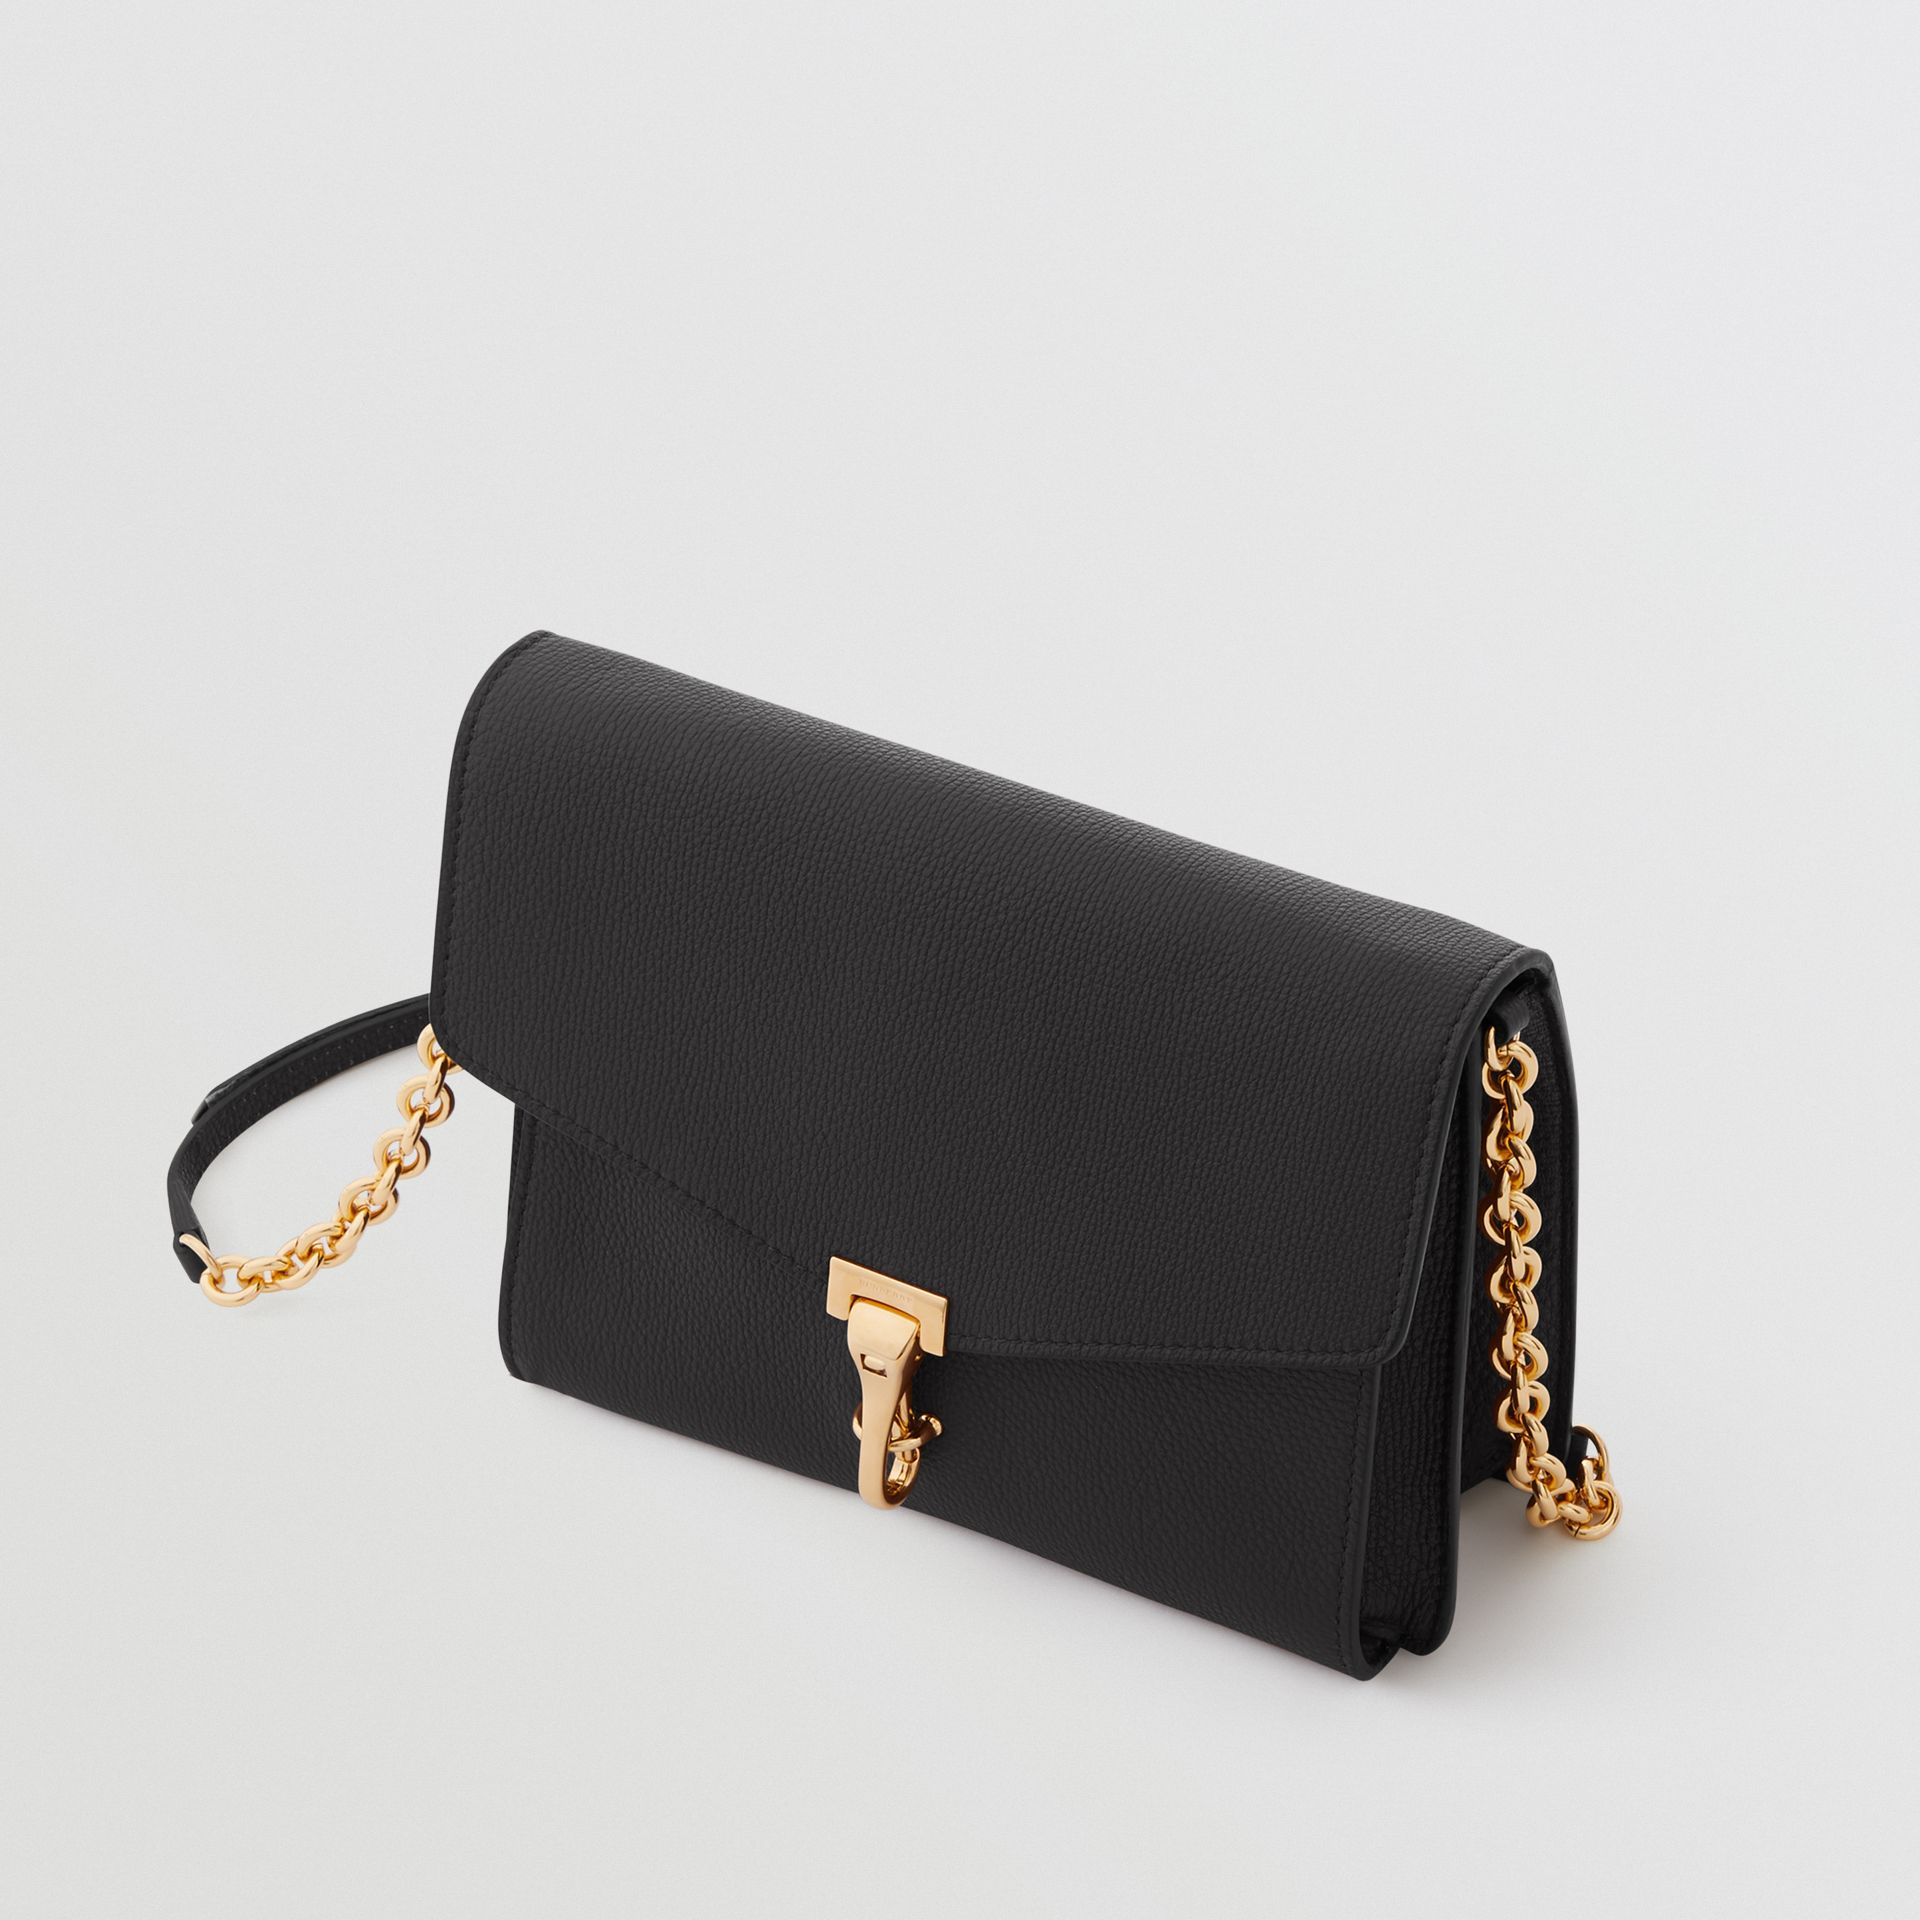 Small Leather Crossbody Bag in Black - Women | Burberry United Kingdom - gallery image 4